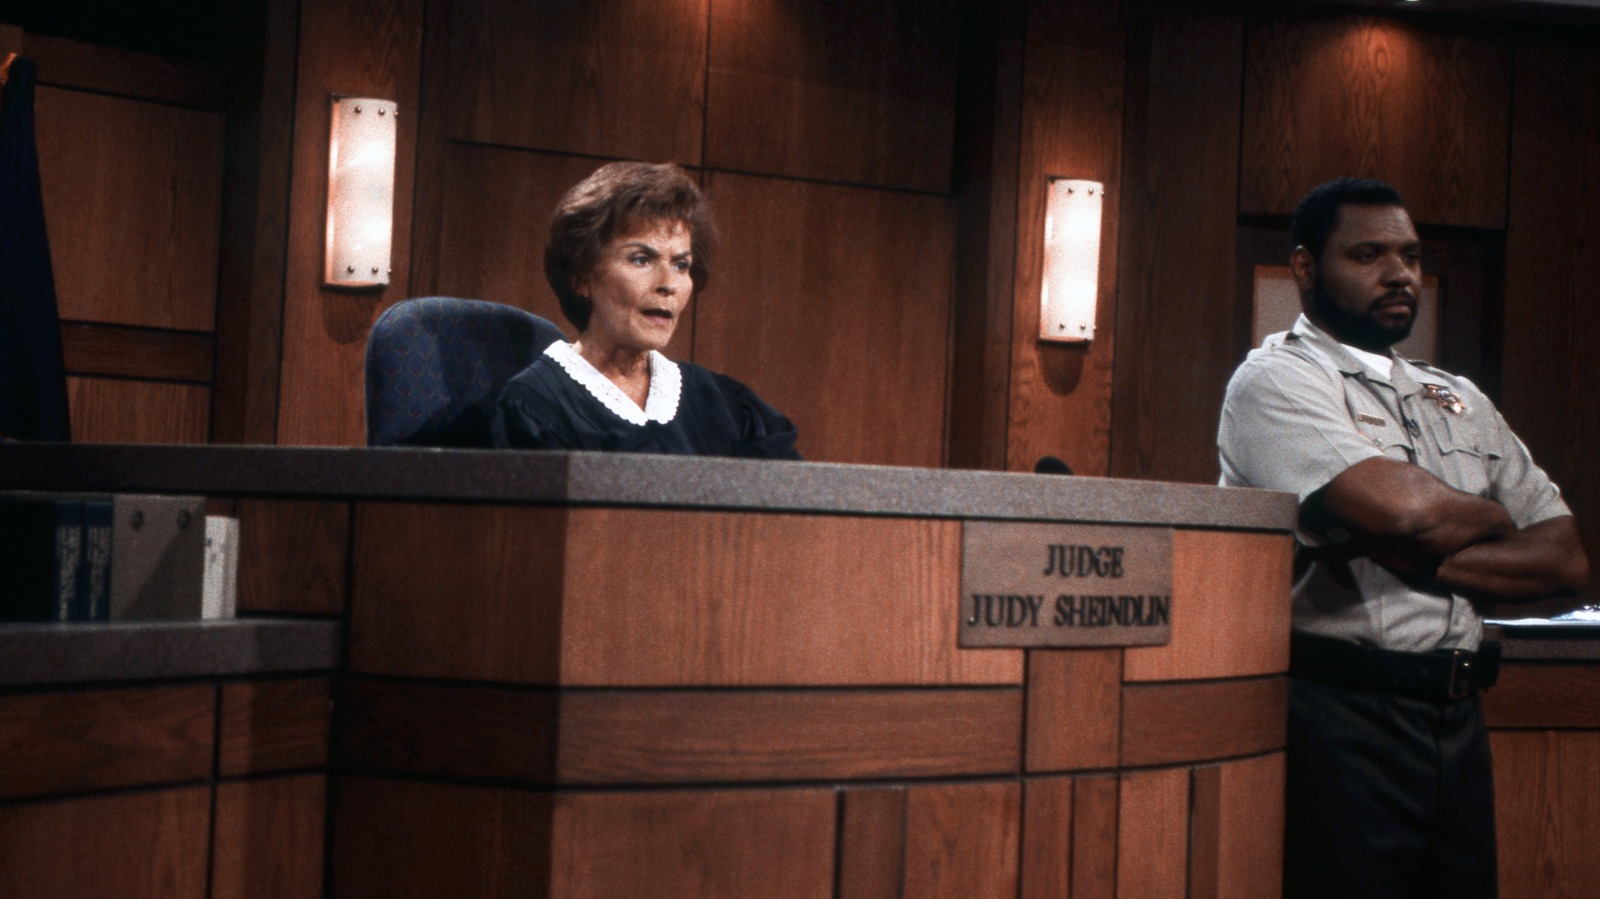 The Secret About Judge Judy You Weren't Supposed To Know